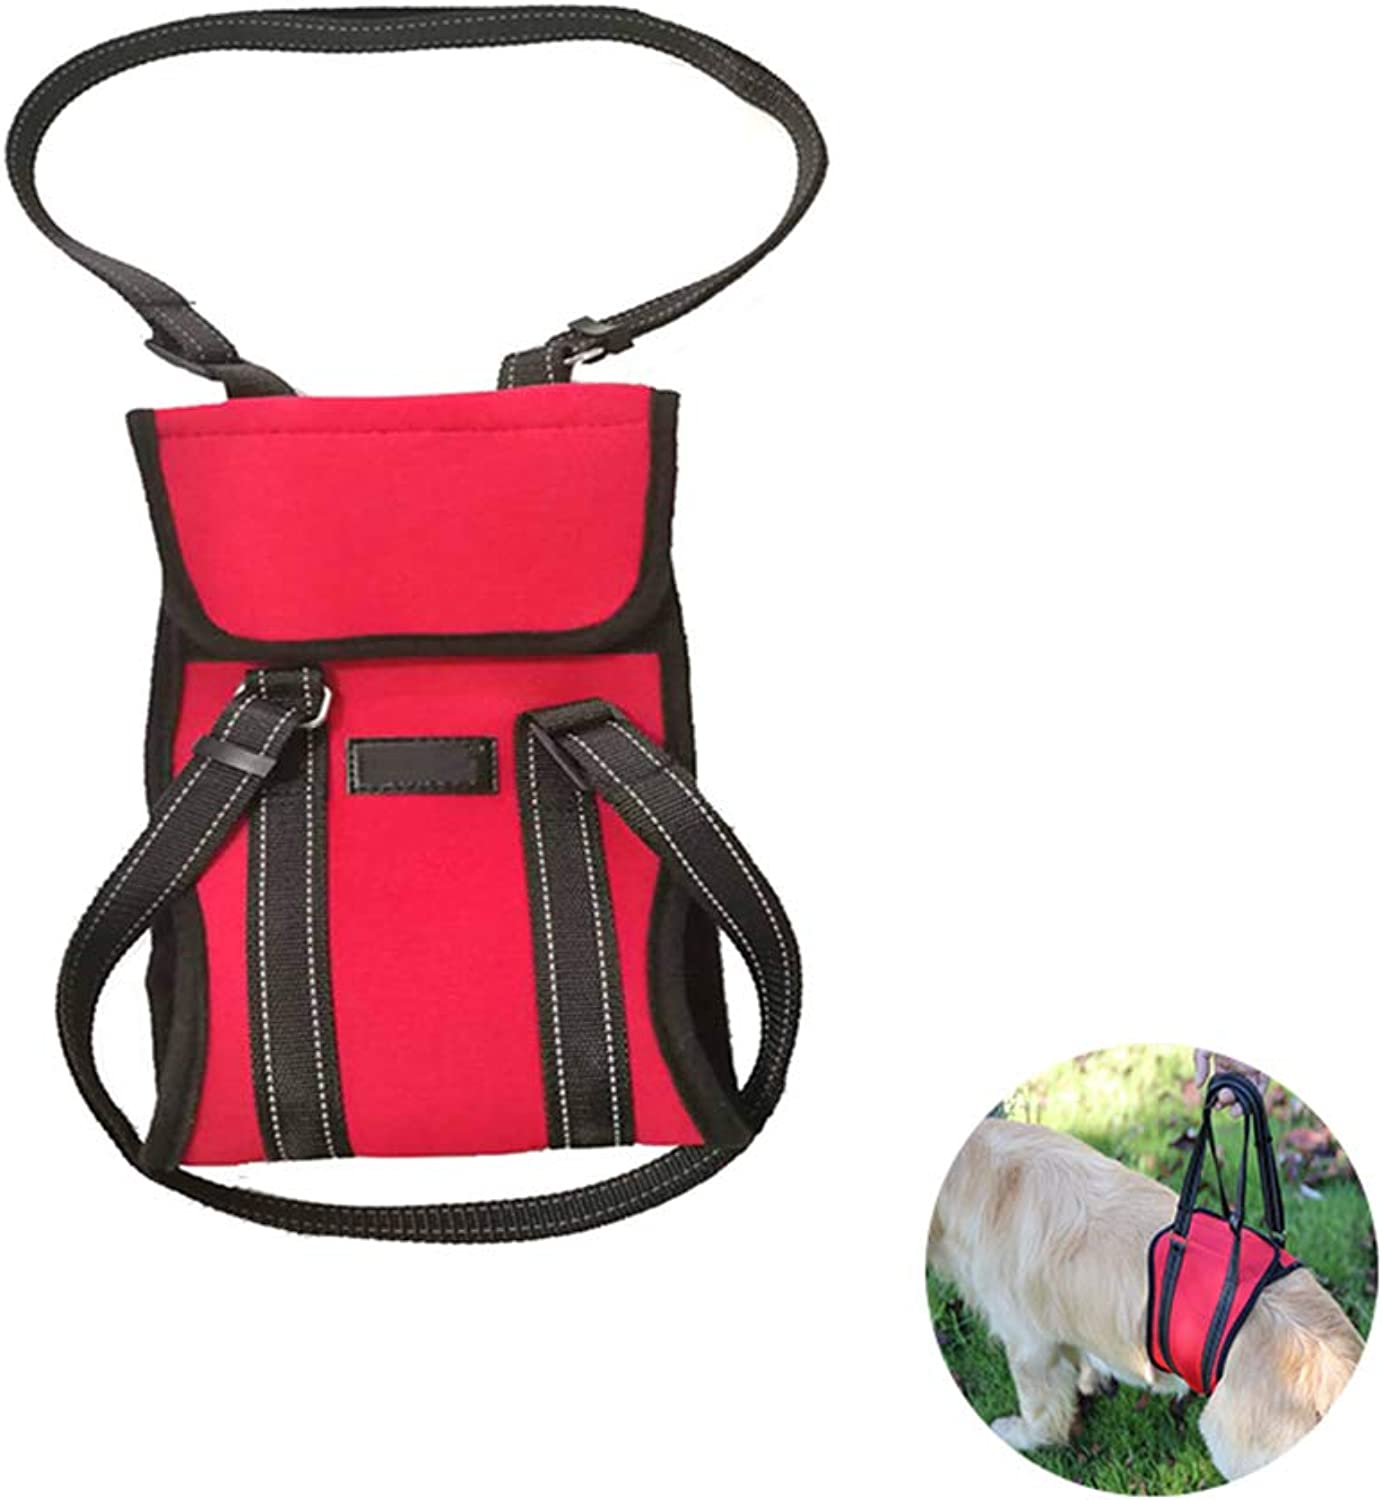 Dog Support & Rehabilitation Harness with Stay On Straps,Ideal for Aging, Disabled, Or Injured Dogs Needing Assistance with Their Balance and Mobility(Red),L